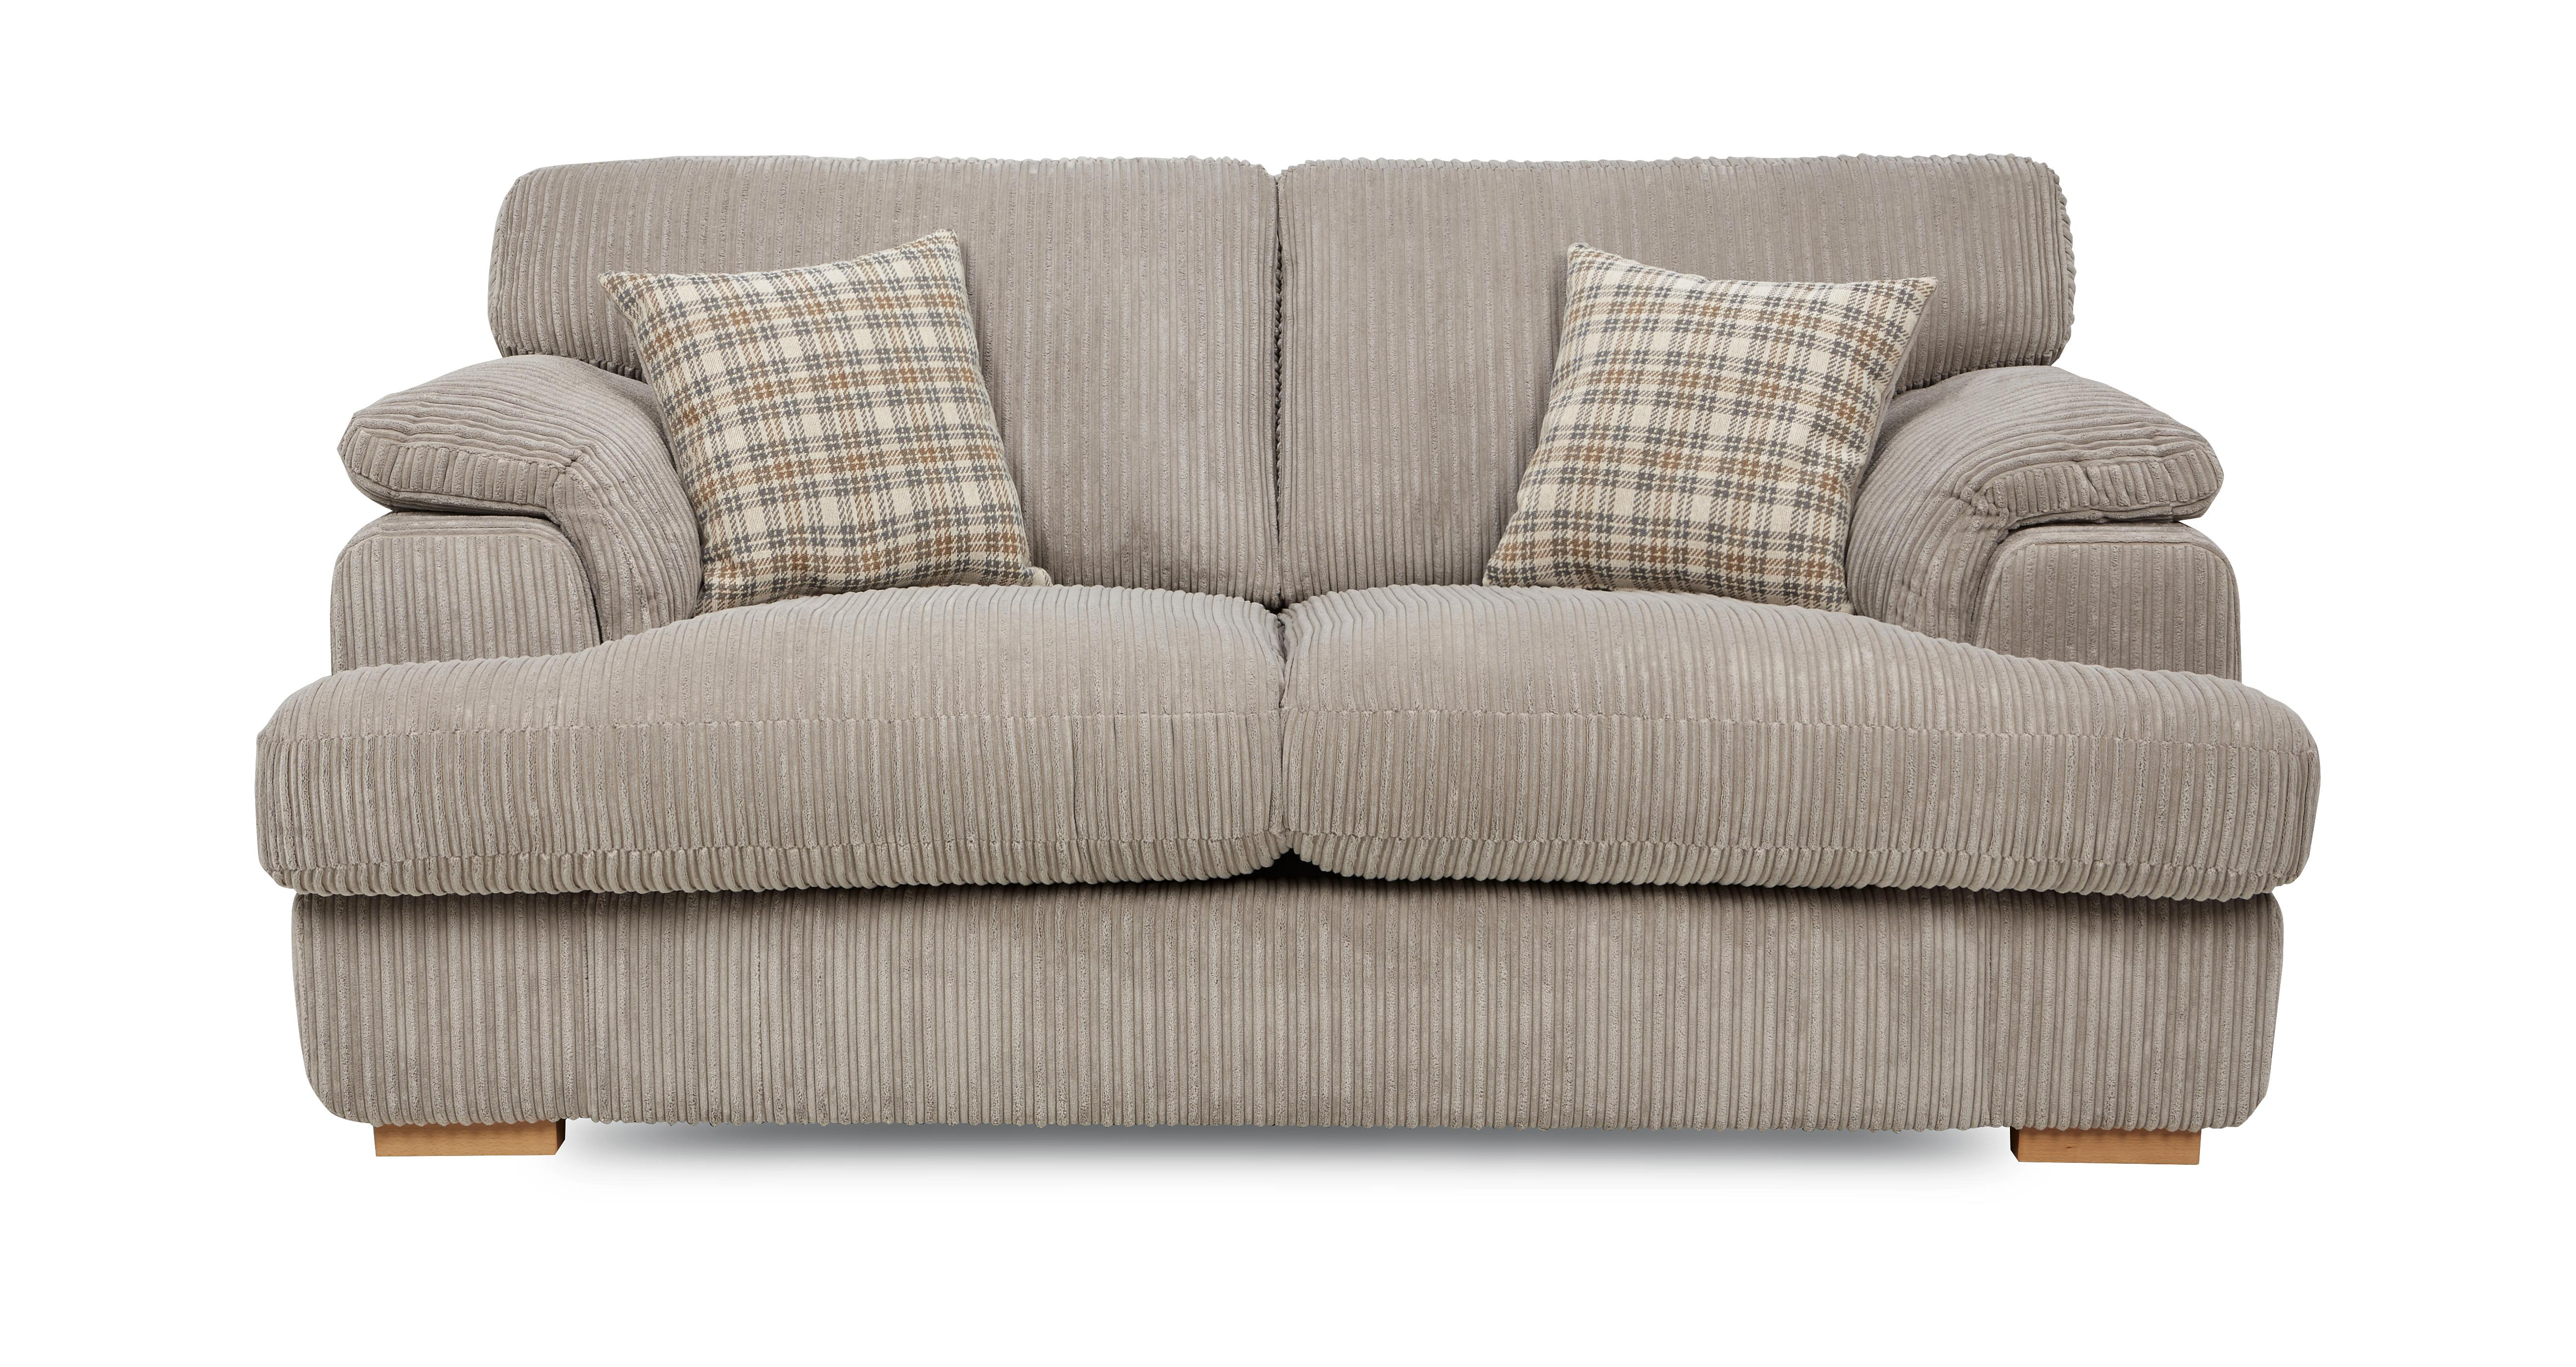 dfs metro sofa review small es configurable sectional multiple colors manufacturer sofas any good leather